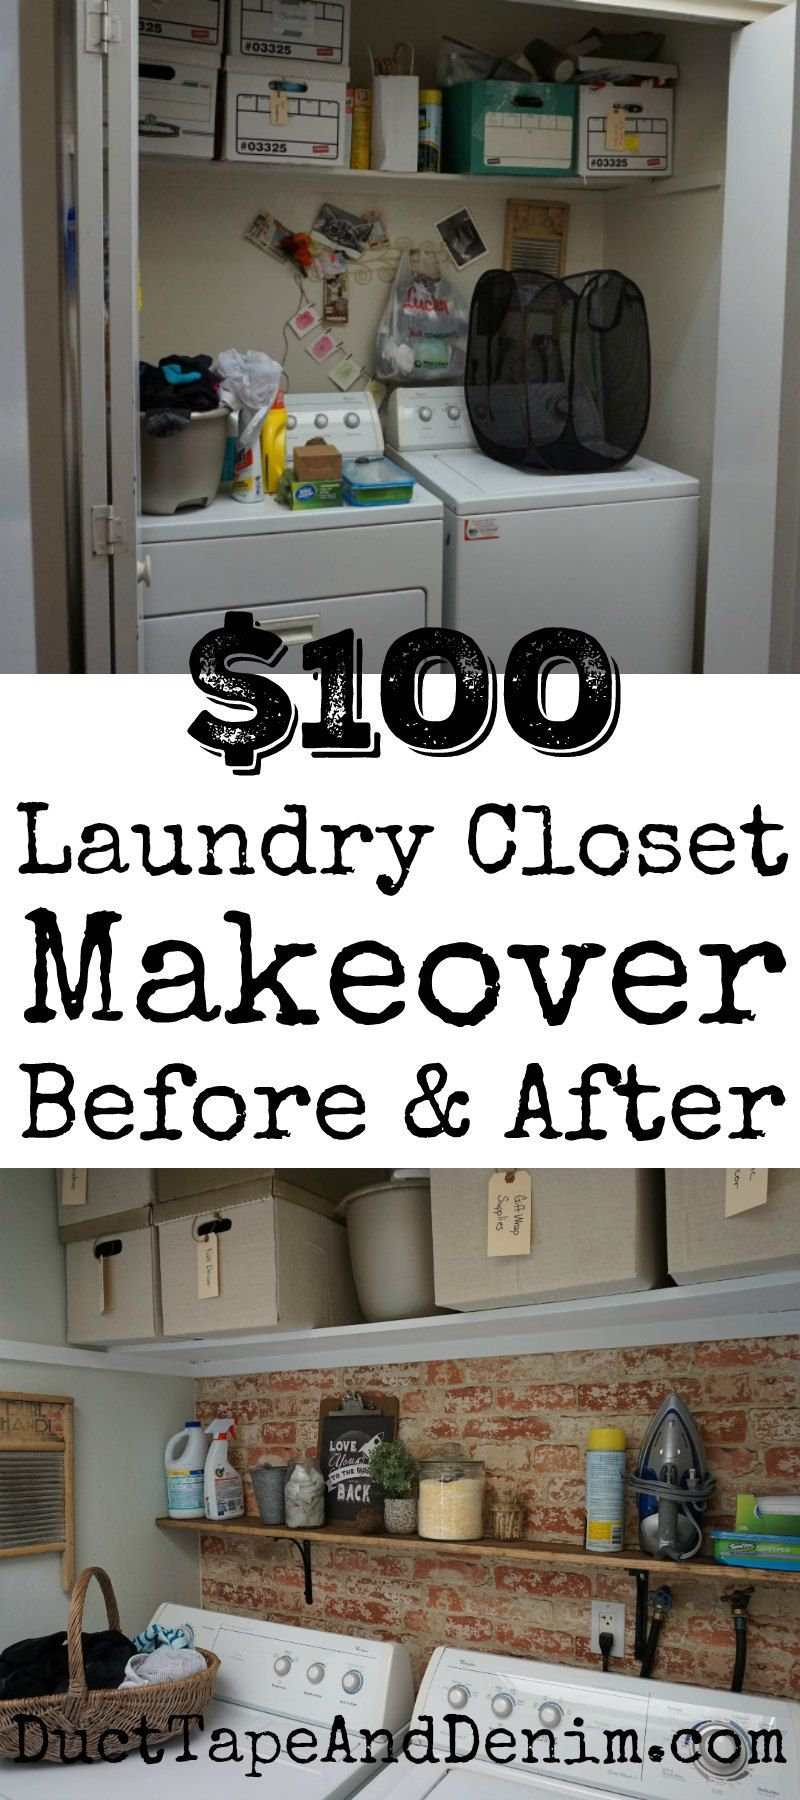 Simple Laundry Room Makeovers How To Design A Simple Laundry Closet Makeover On A 100 Budget